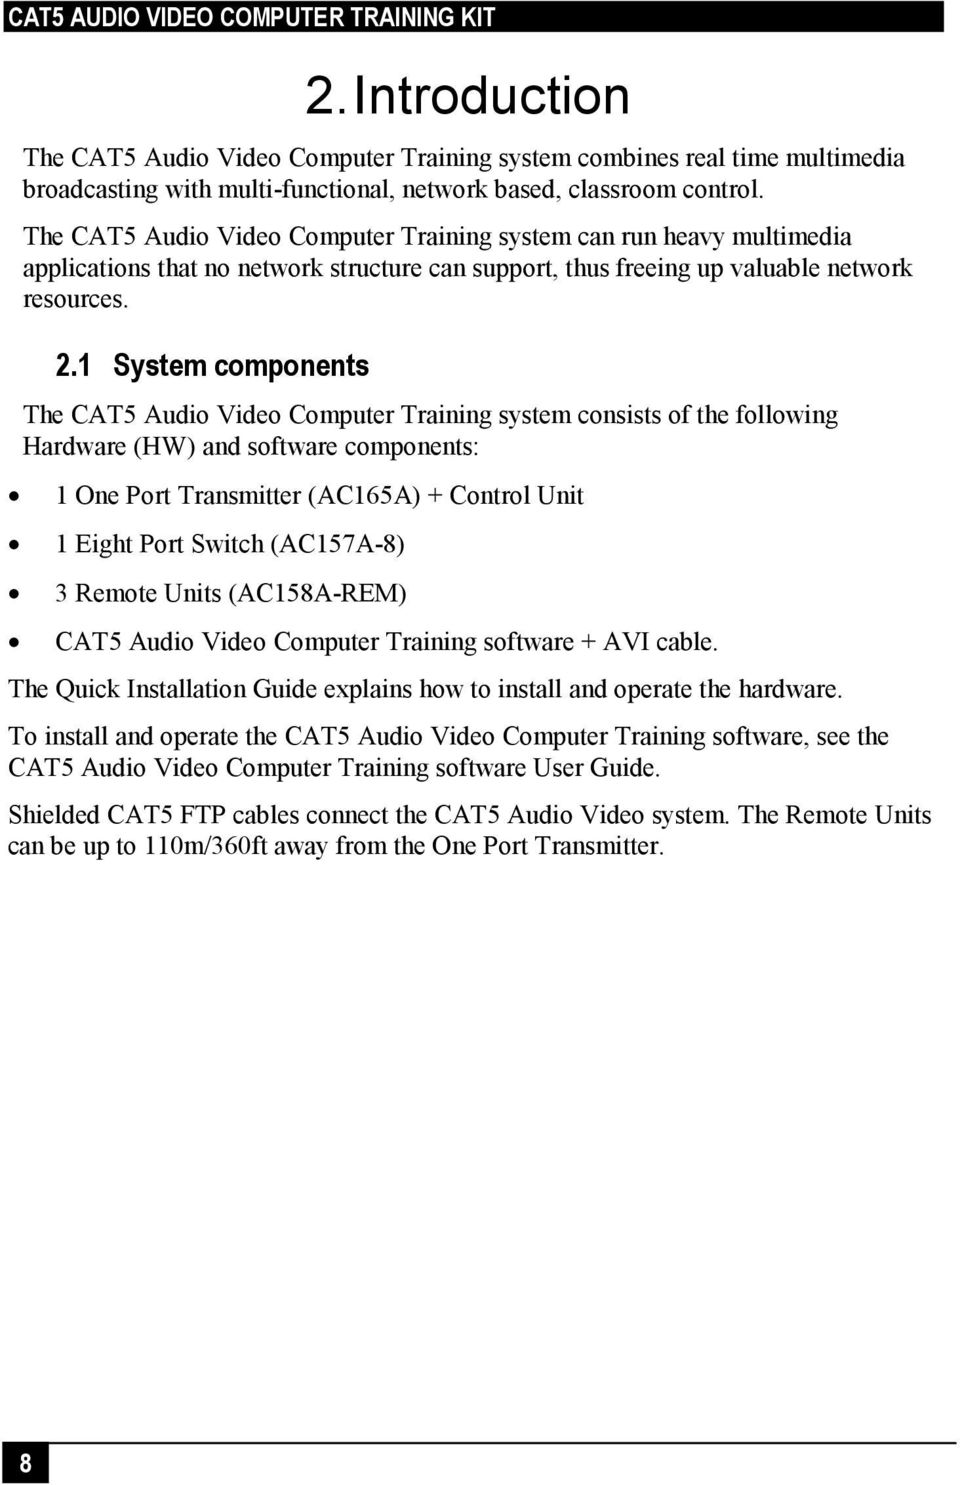 1 System components The CAT5 Audio Video Computer Training system consists of the following Hardware (HW) and software components: 1 One Port Transmitter (AC165A) + Control Unit 1 Eight Port Switch